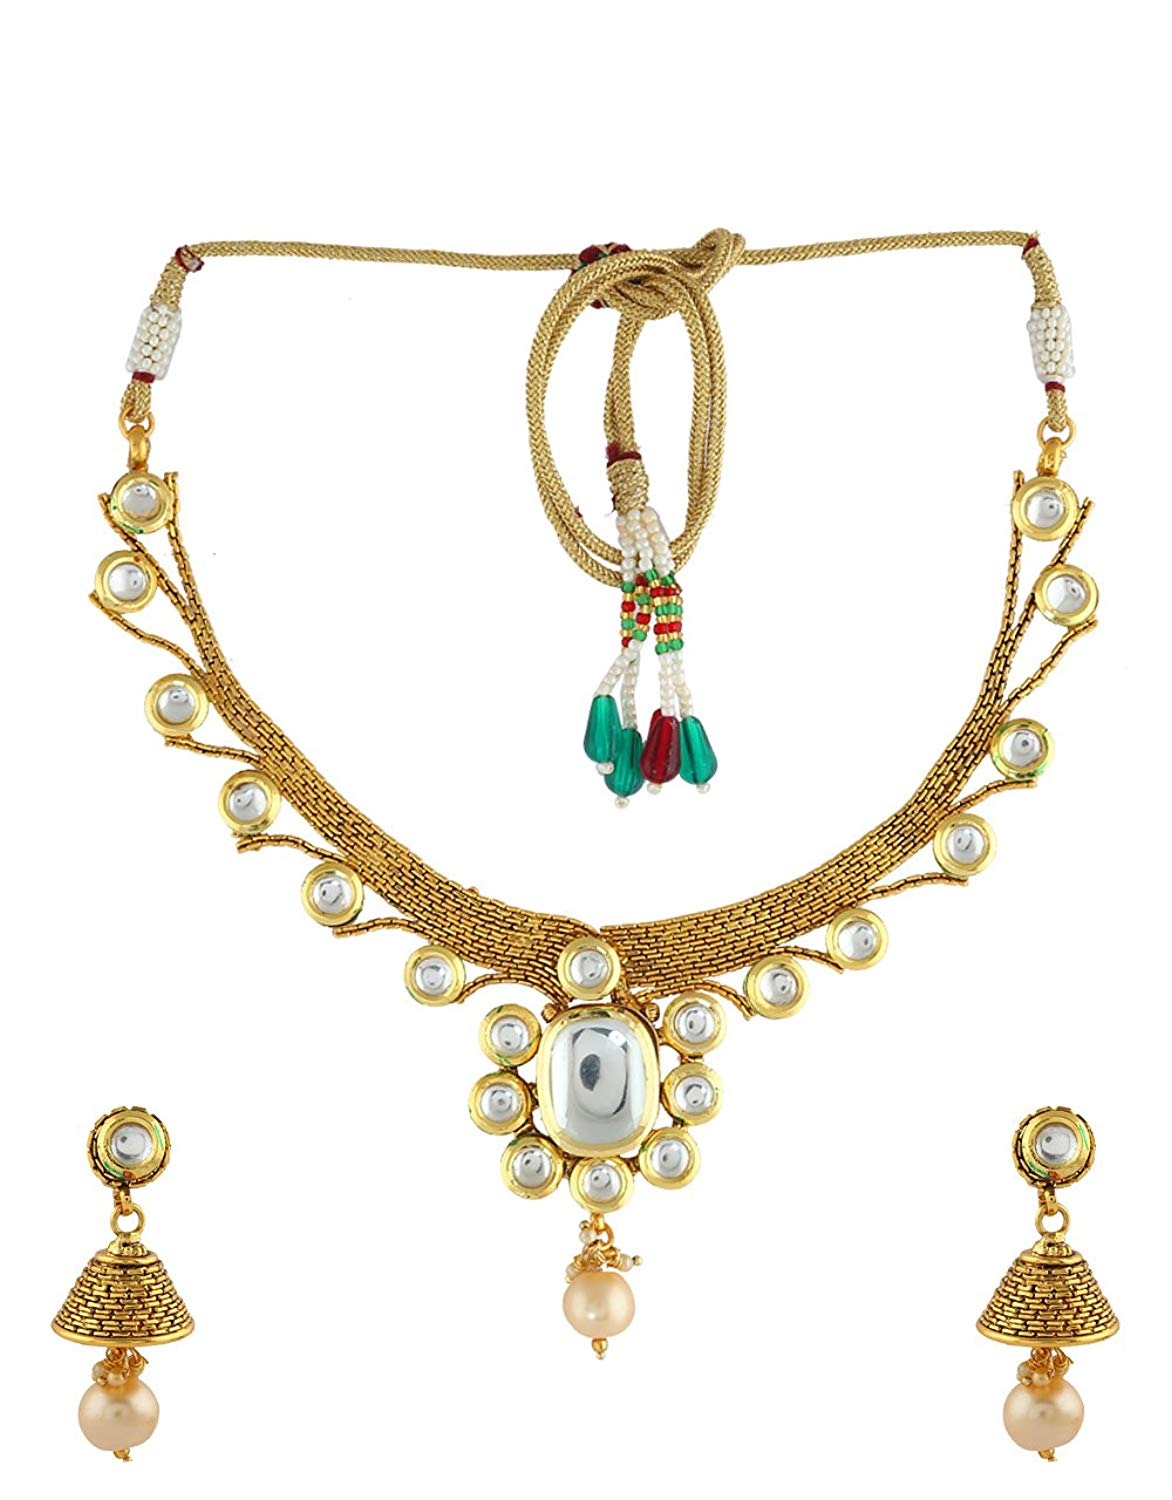 Anuradha Art Golden Finish Styled With Studded White Colour Kundan Designer Traditional Necklace Set For Women/Girls